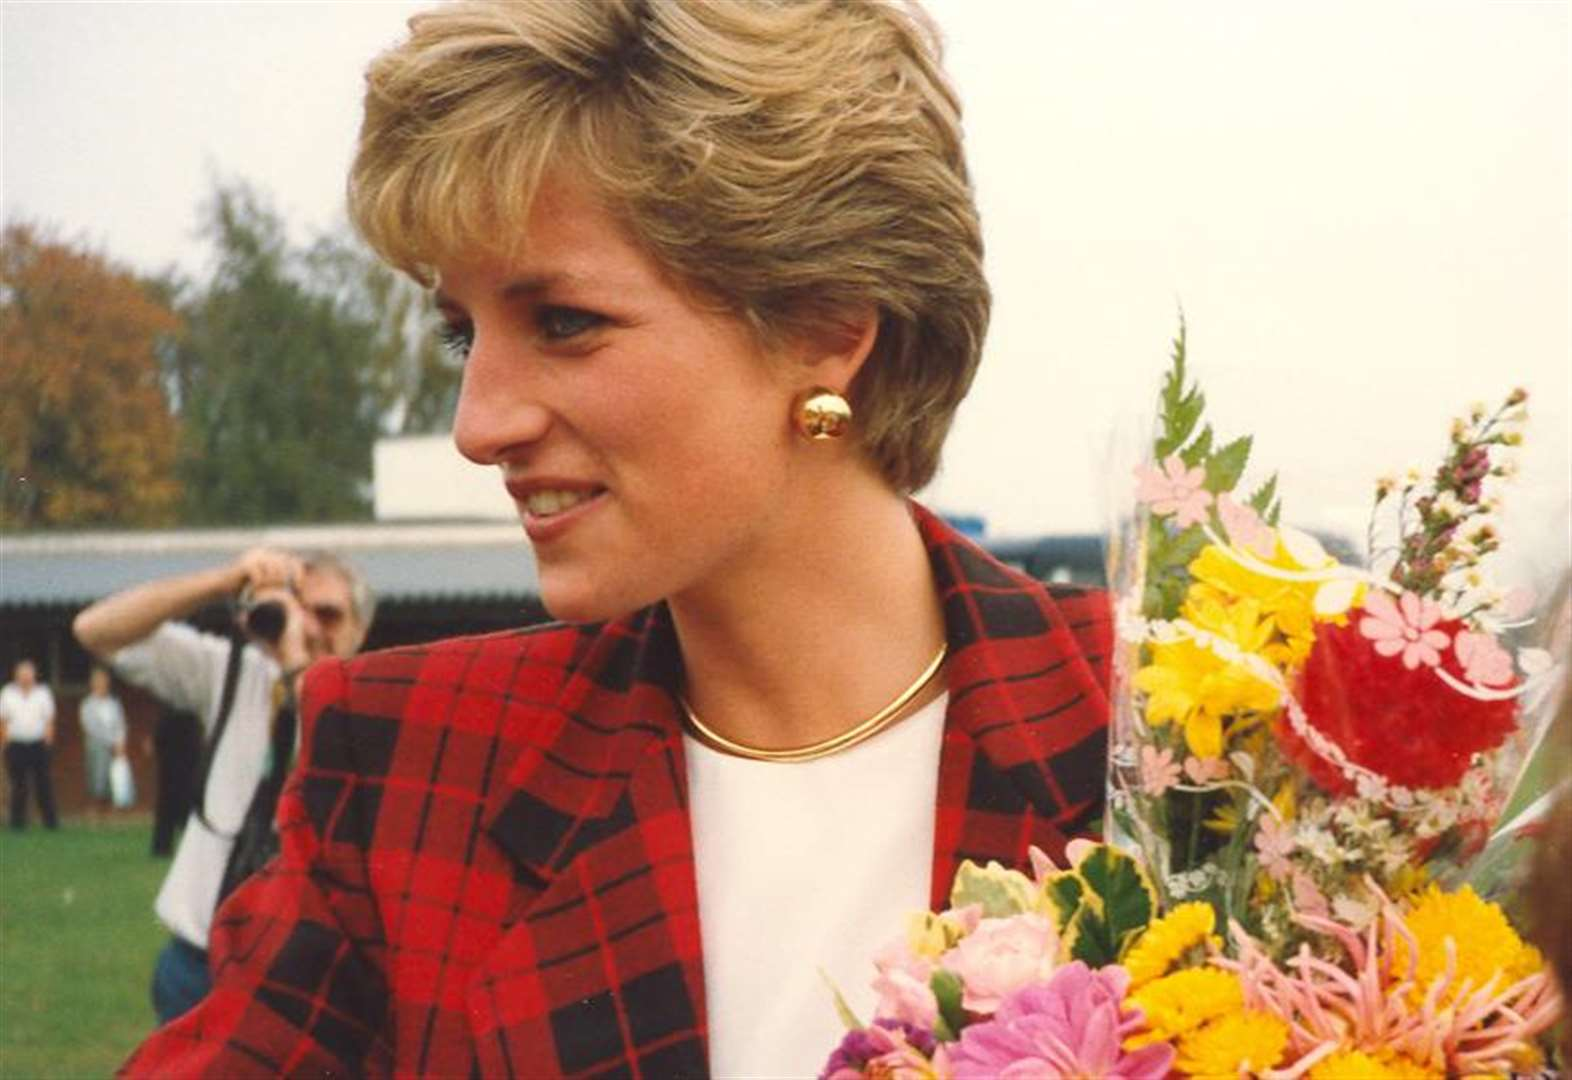 Pictures emerge of Diana